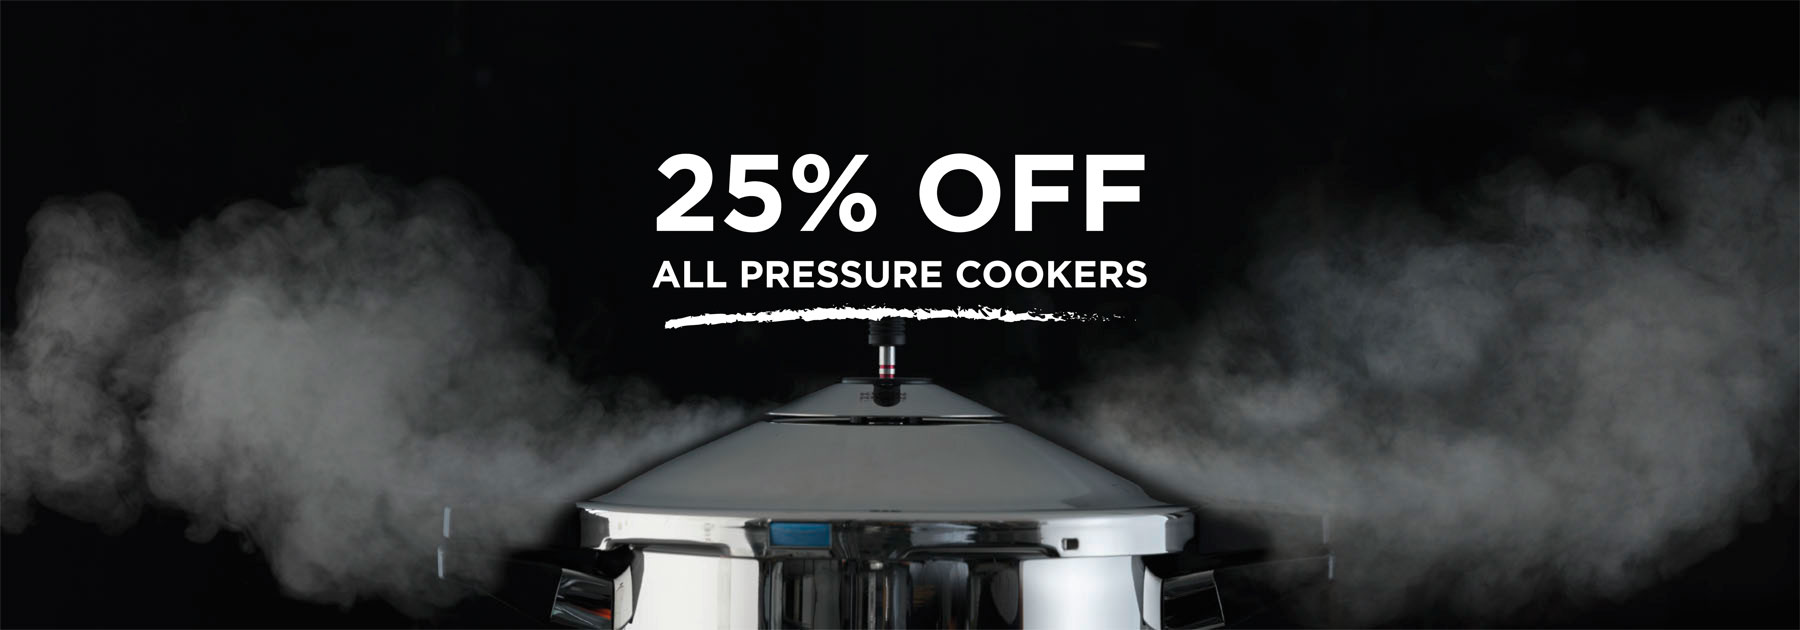 DISCOUNTS, offers, sale, pressure, cookers, duromatic, kuhn, rikon